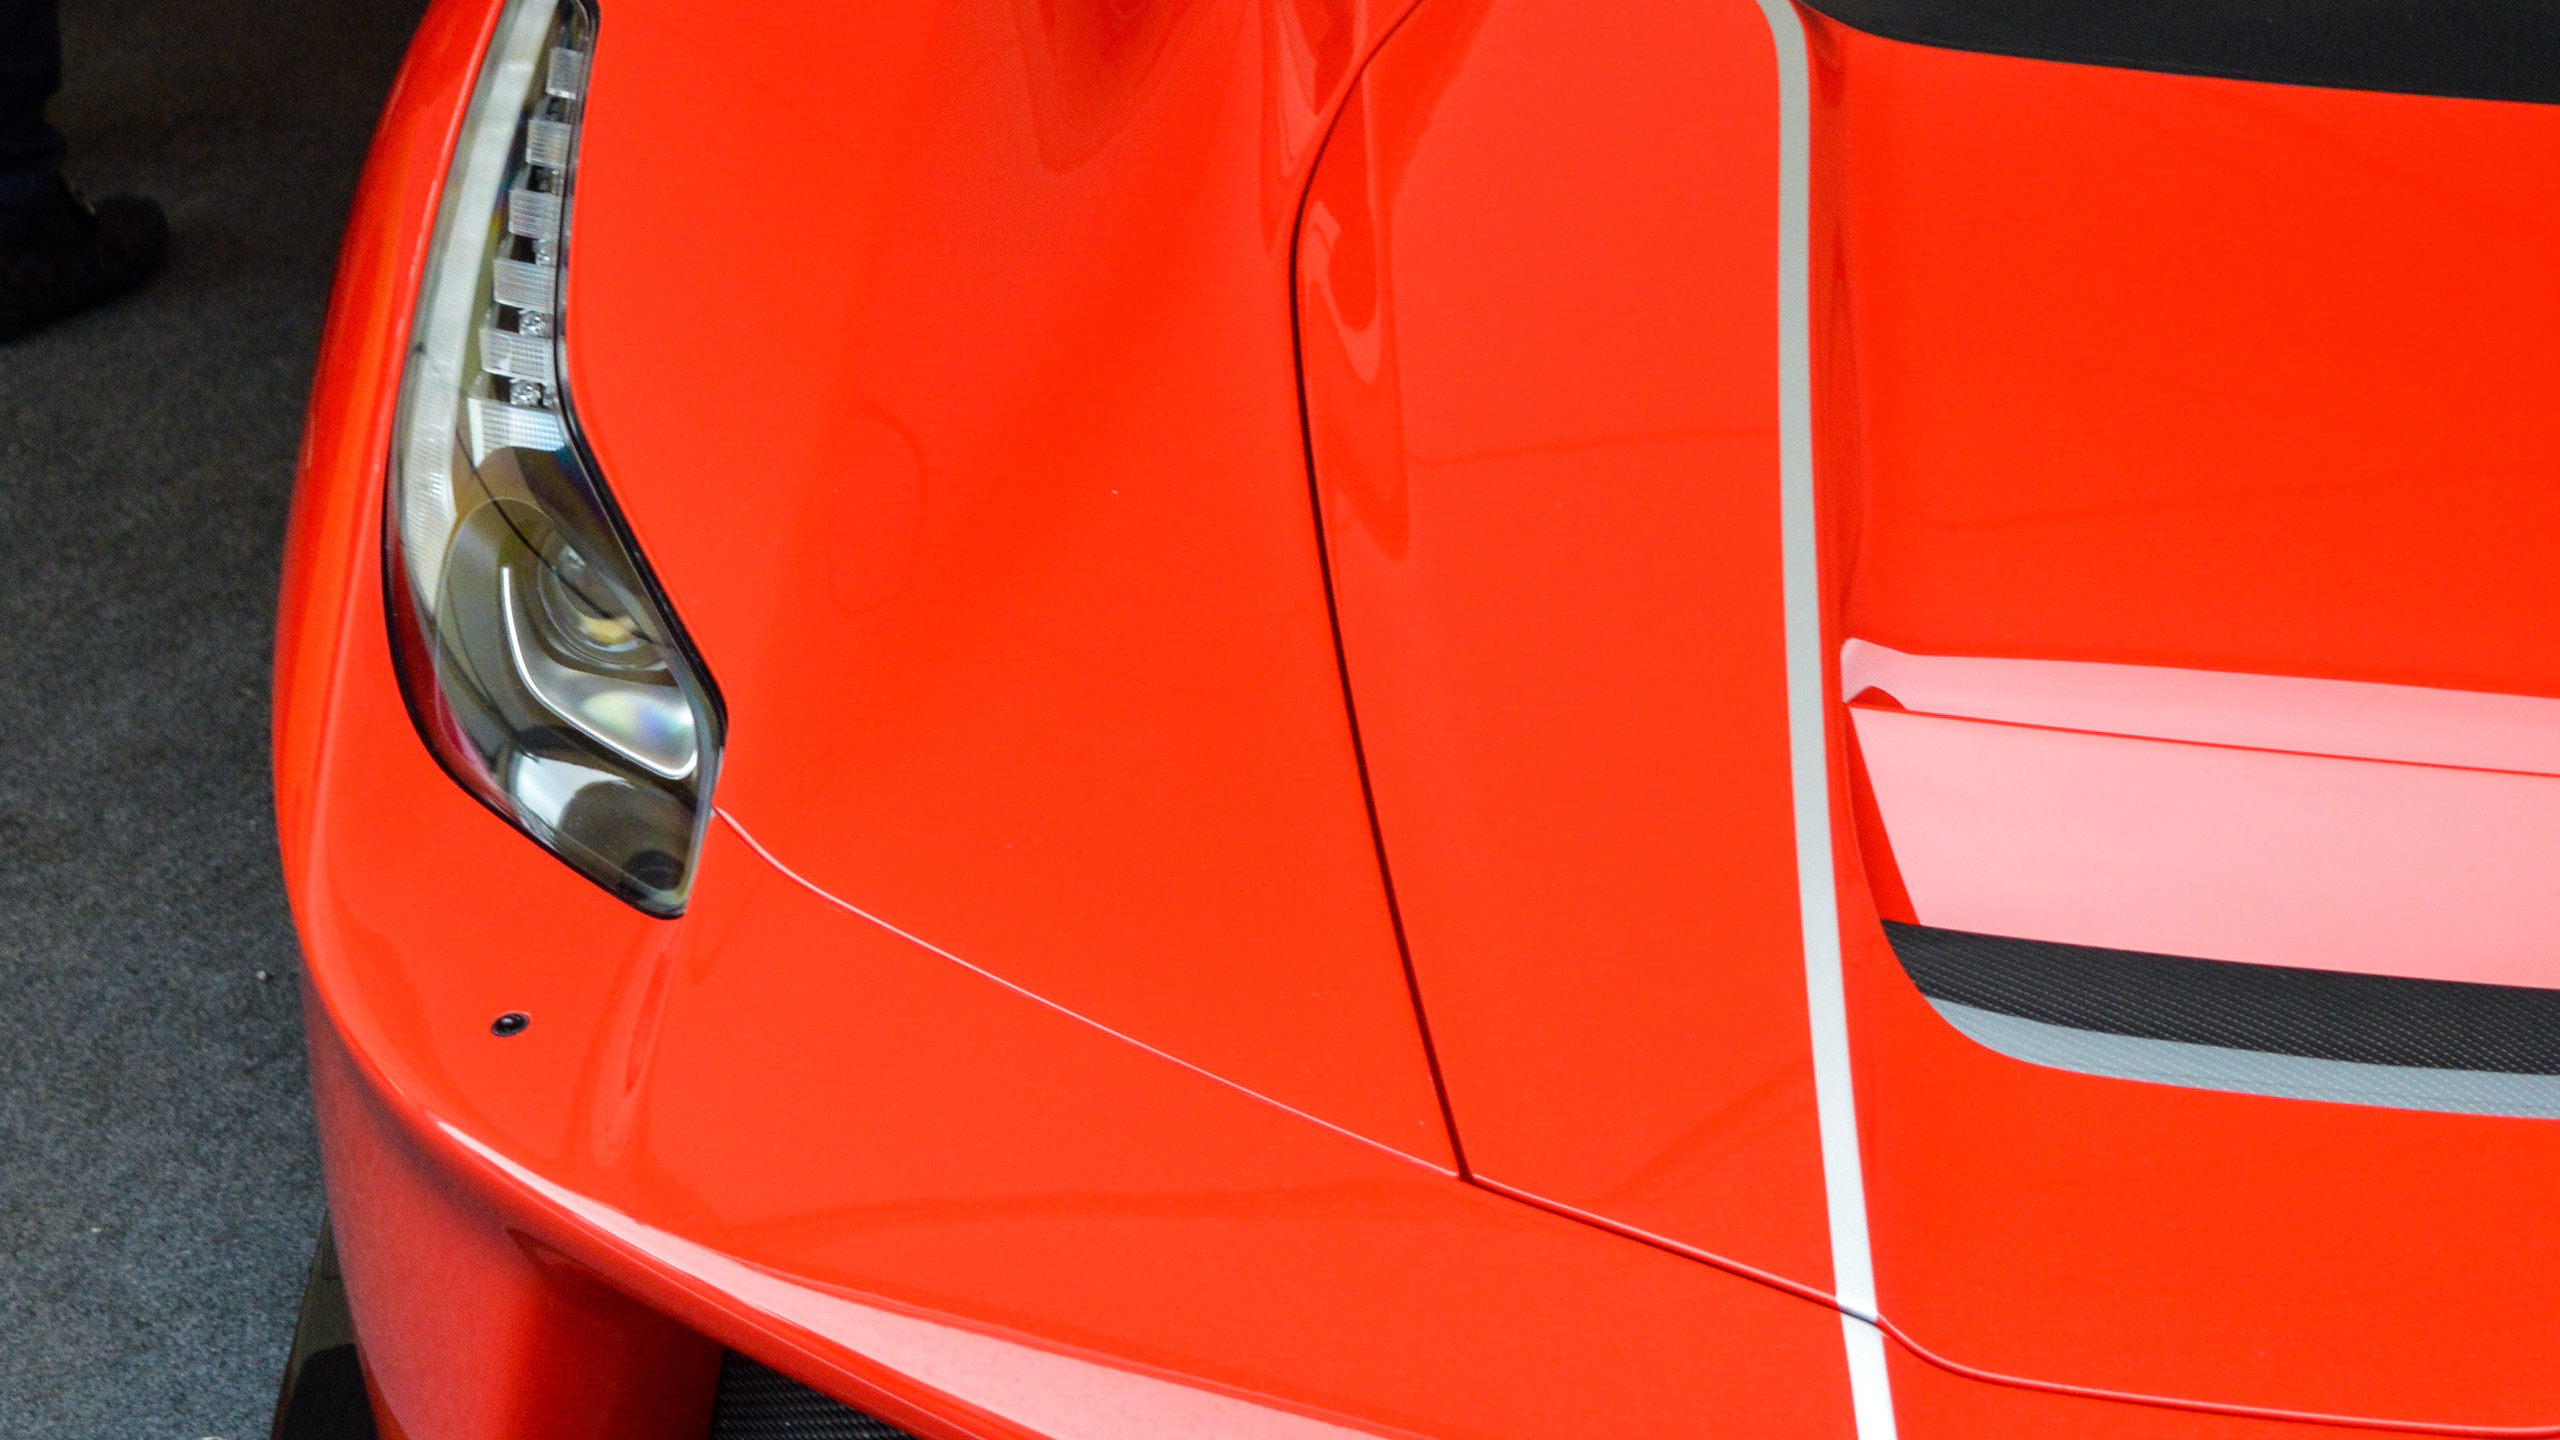 Ferrari's roofless revision of the already exceptional LaFerrari hypercar